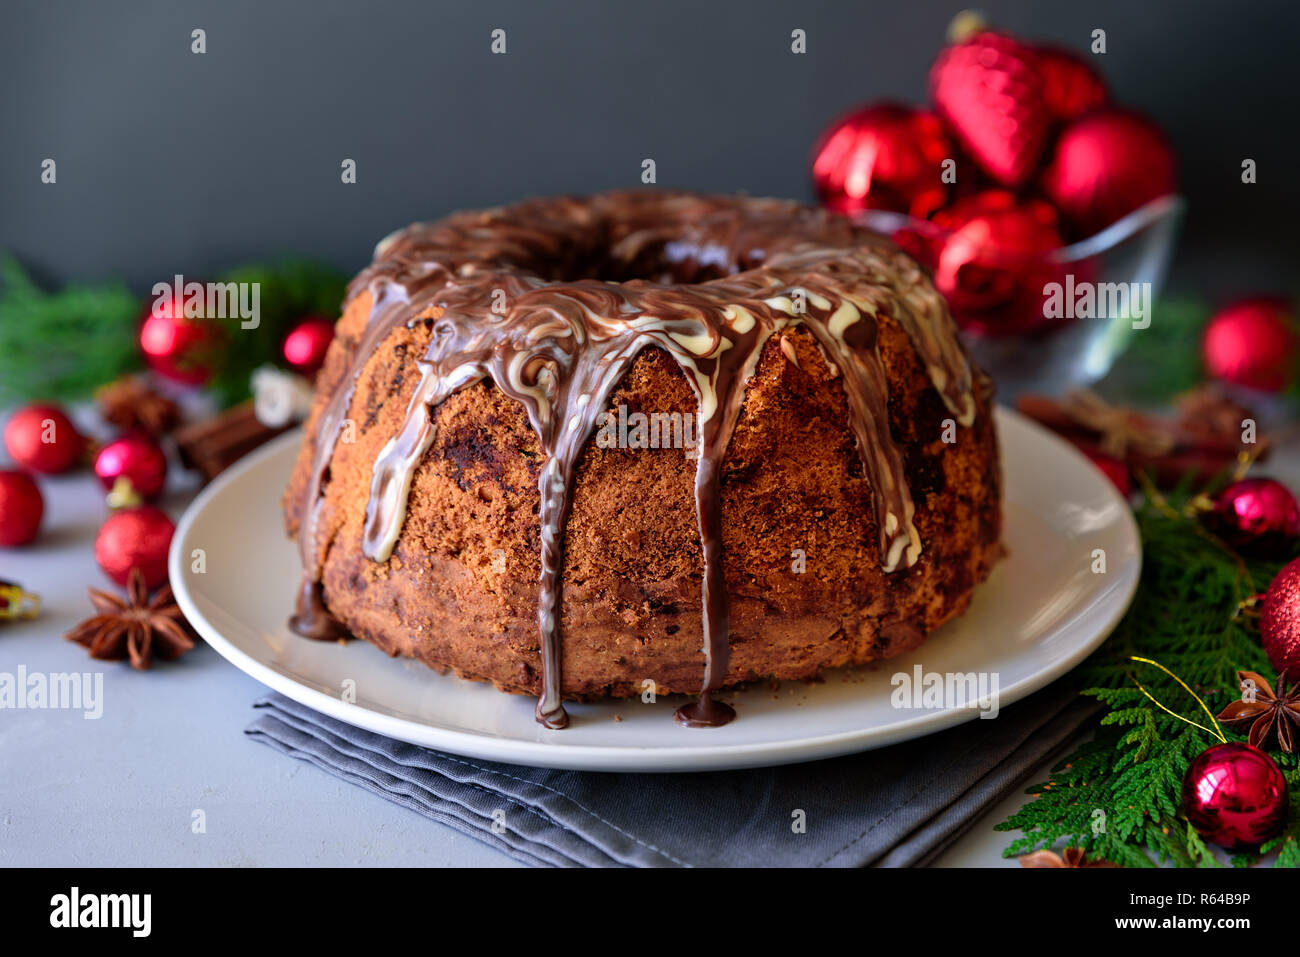 Christmas cake with chocolate icing on gray wooden background. Holiday decorations concept - Stock Image